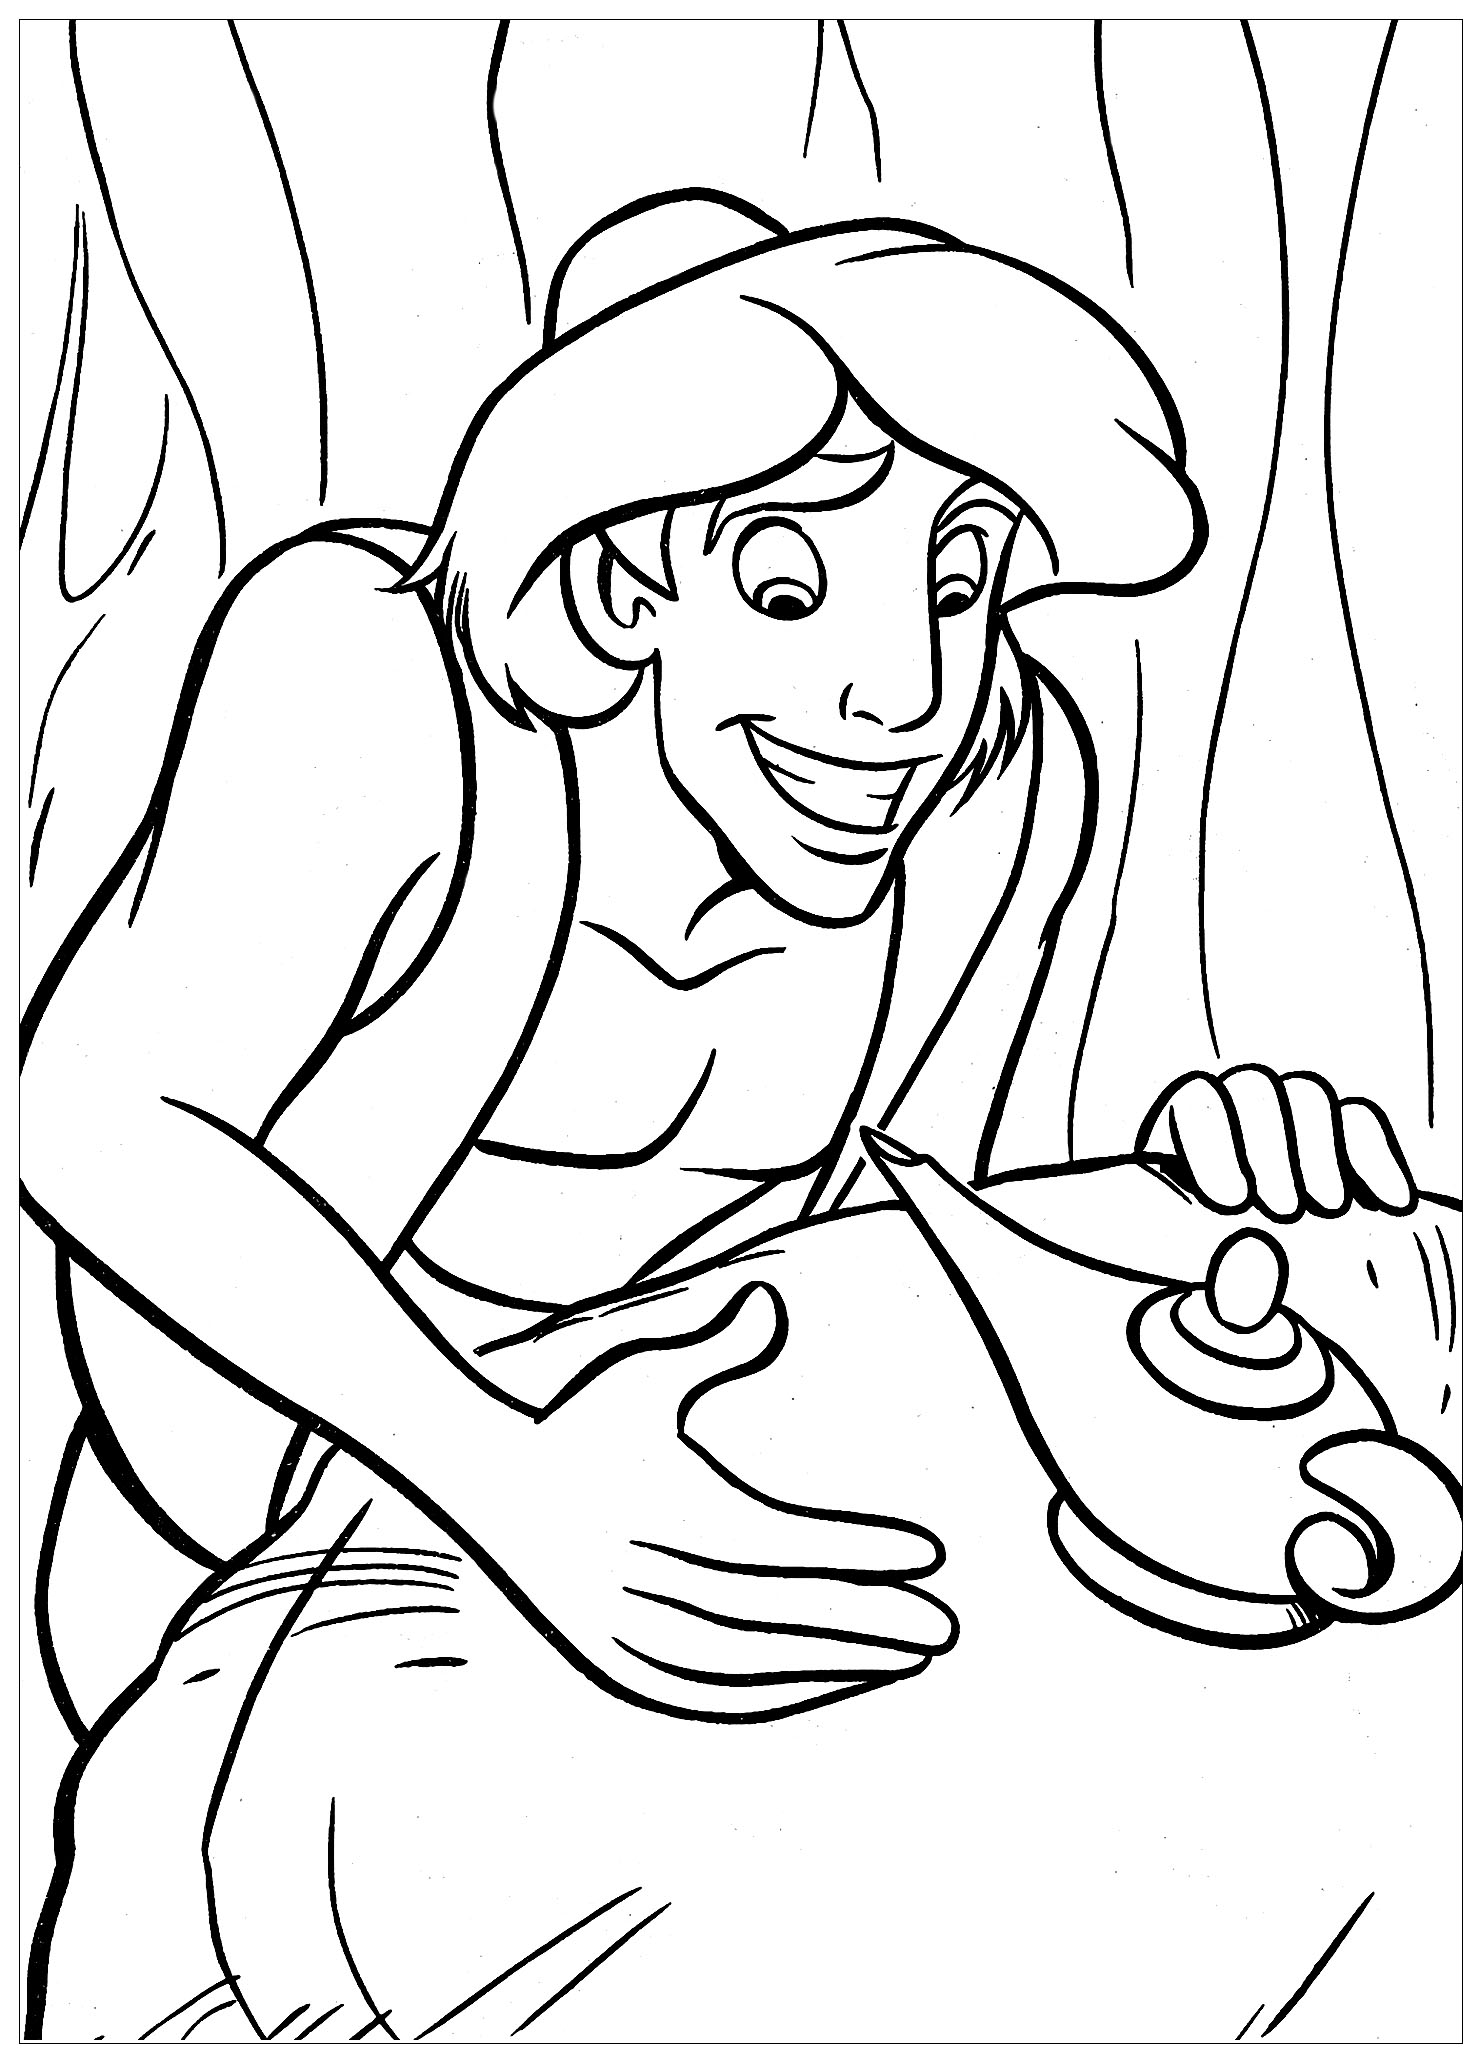 aladdin characters coloring pages aladdin and jasmine to color for children aladdin and pages coloring characters aladdin